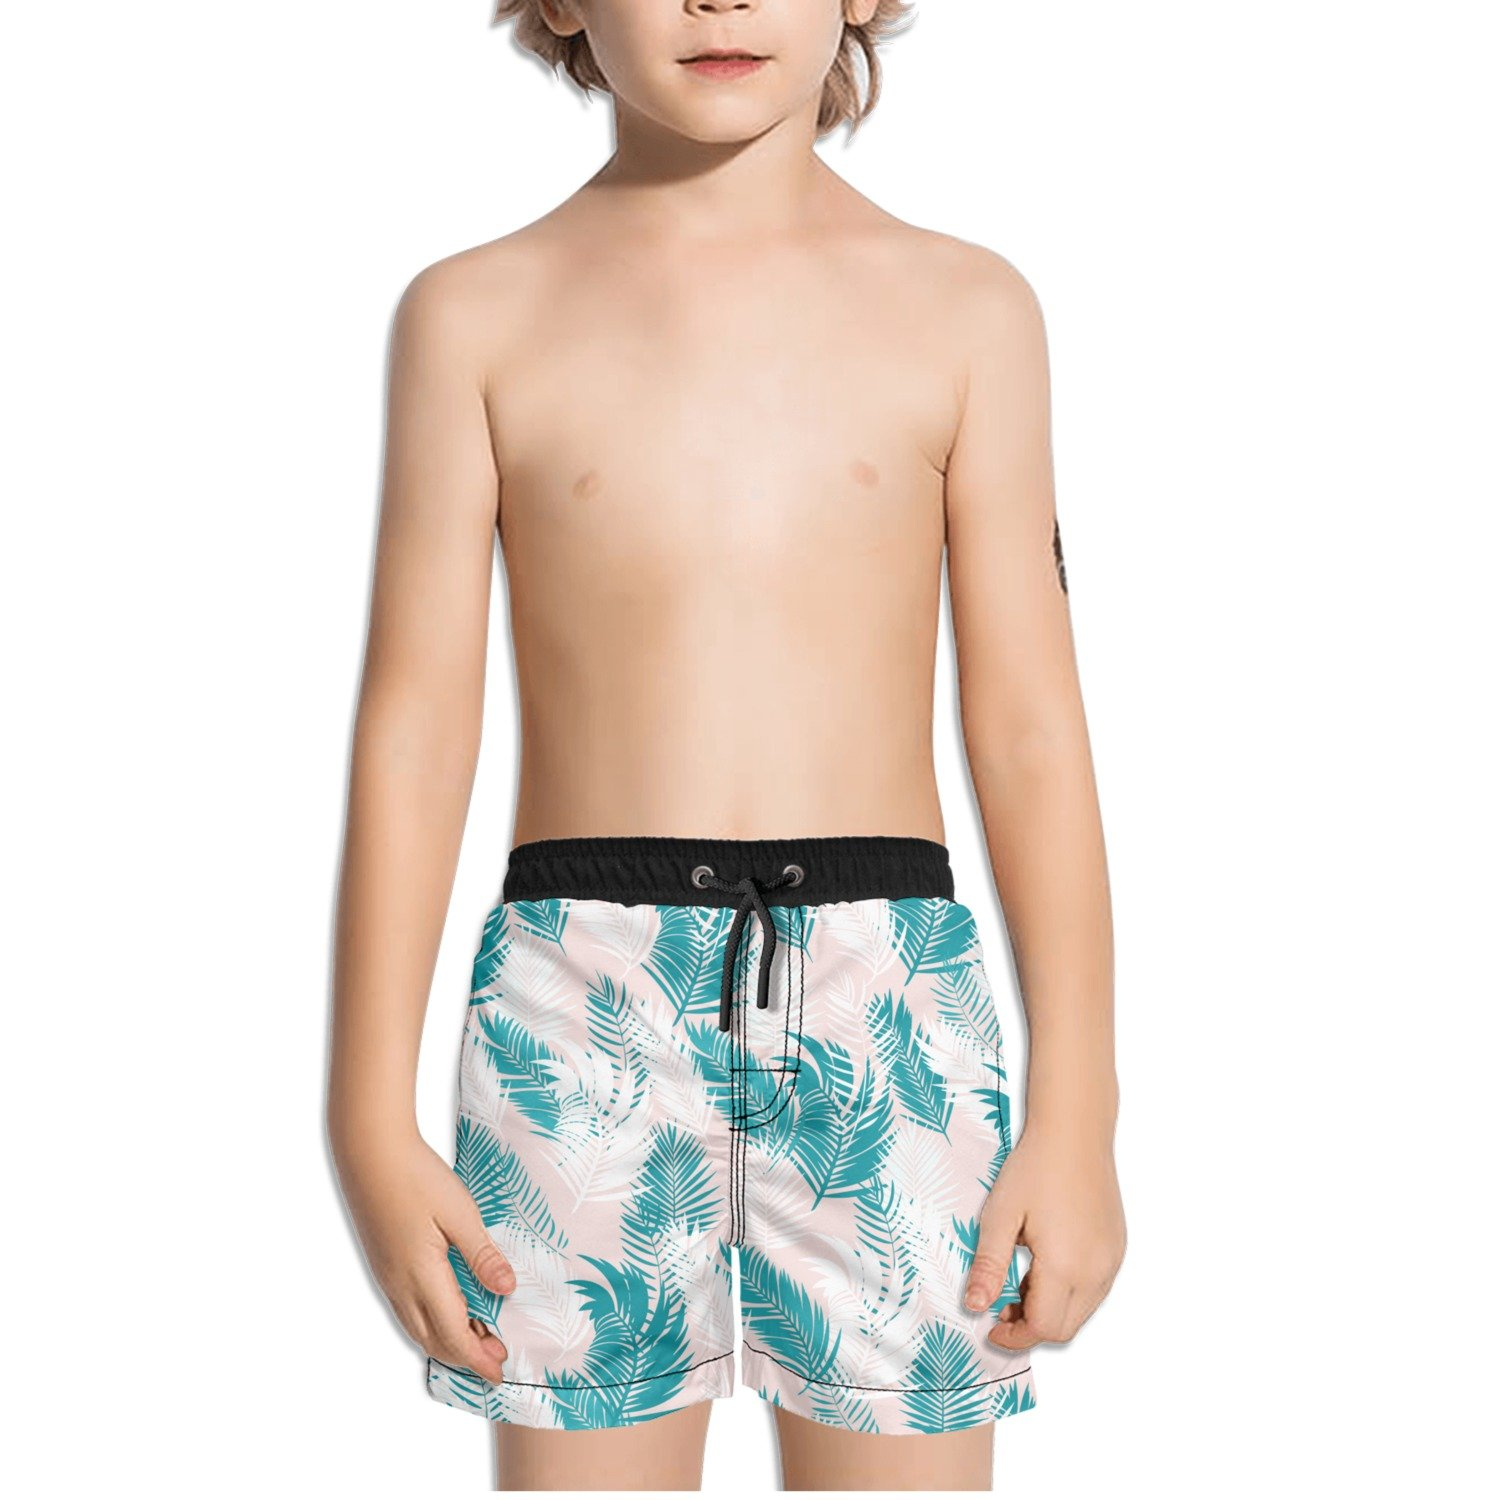 FullBo Green Tropical Palm Leaves in Pink Little Boy's Short Swim Trunks Quick Dry Beach Shorts